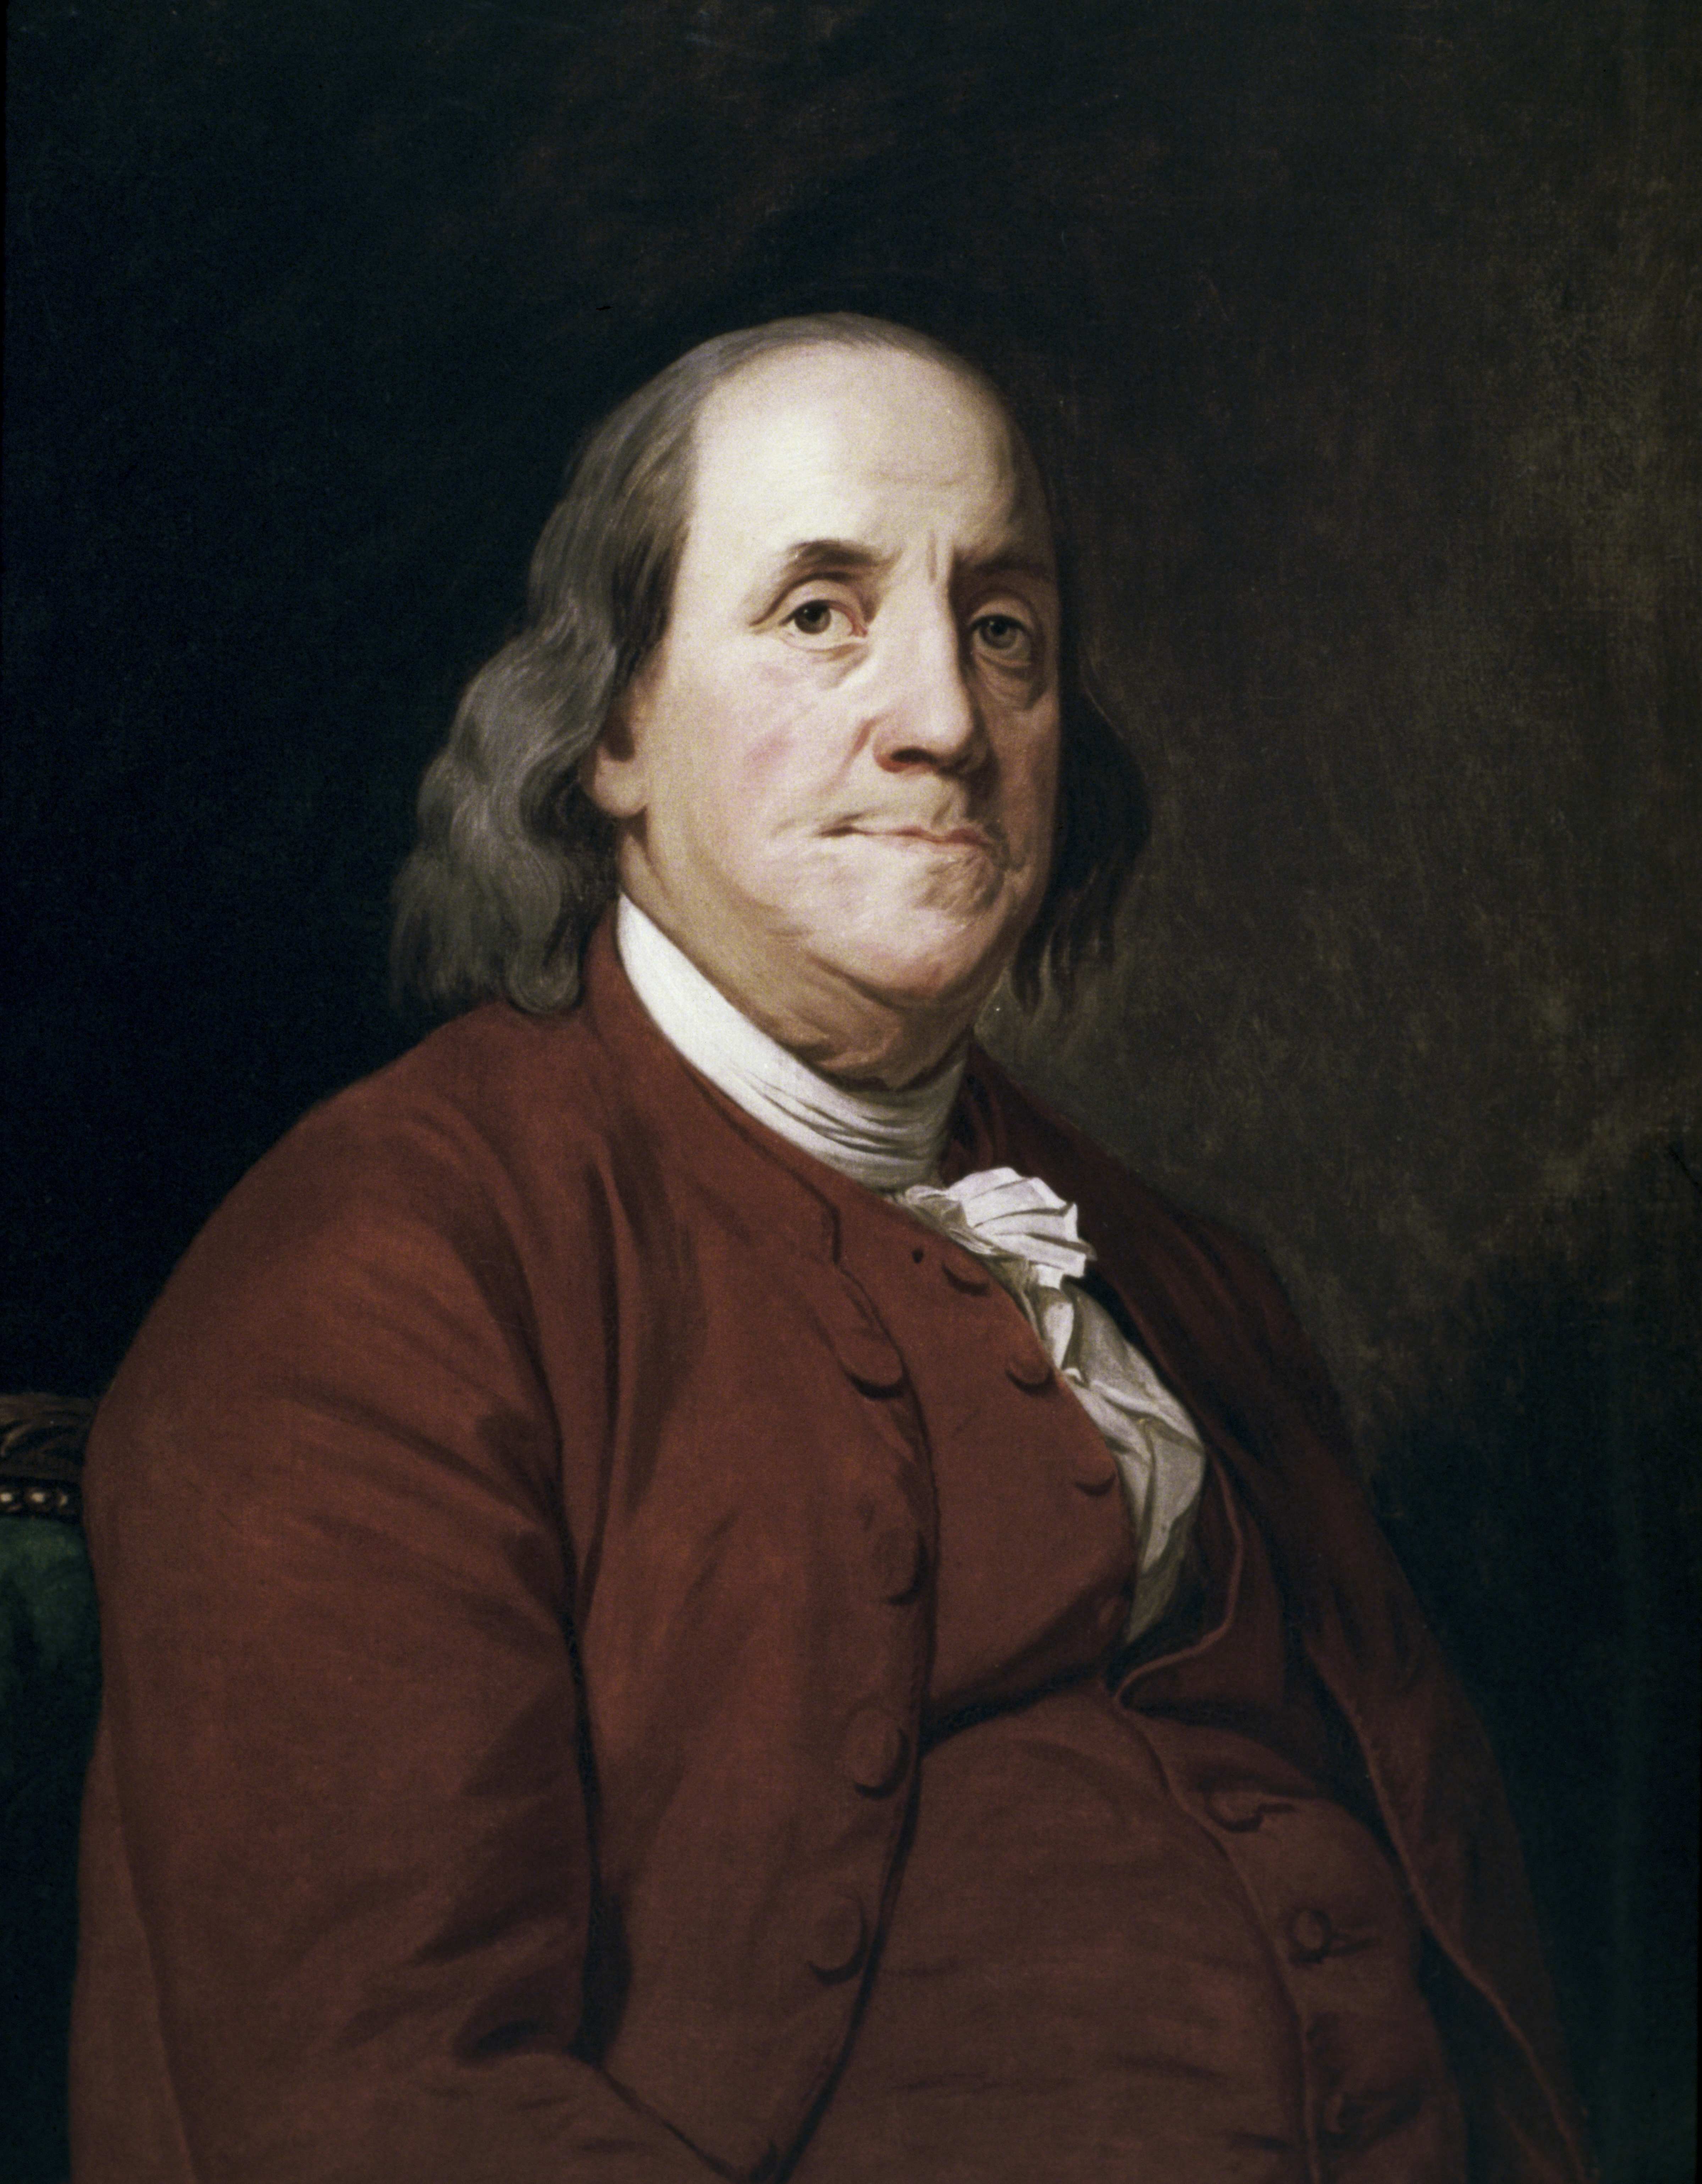 Portrait of Benjamin Franklin by Joseph Wright at Corcoran Gallery of Art in Washington, D.C.